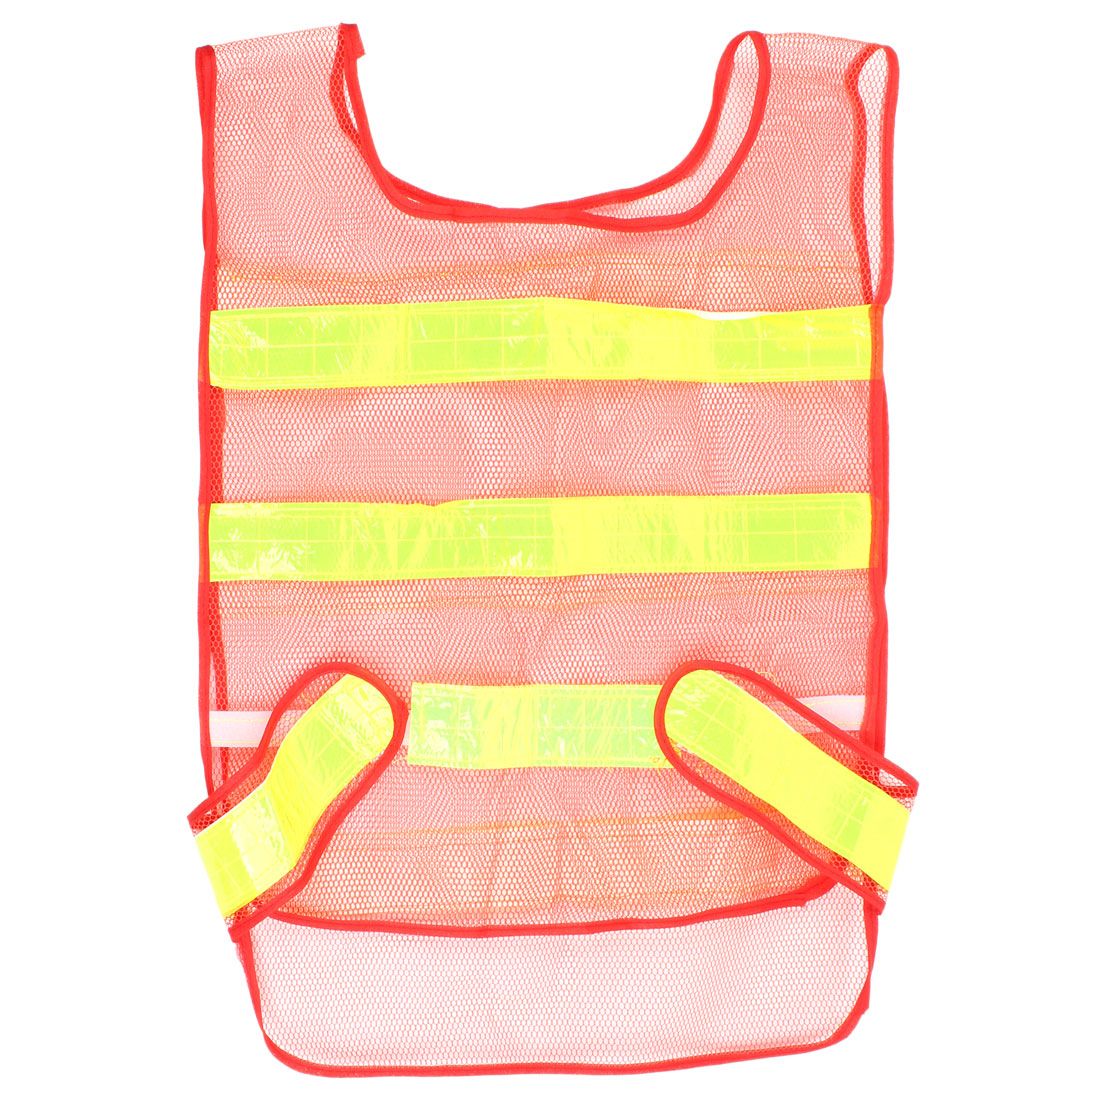 Red Yellow Reflective Strips Safety Warning Vest Jacket Clothing